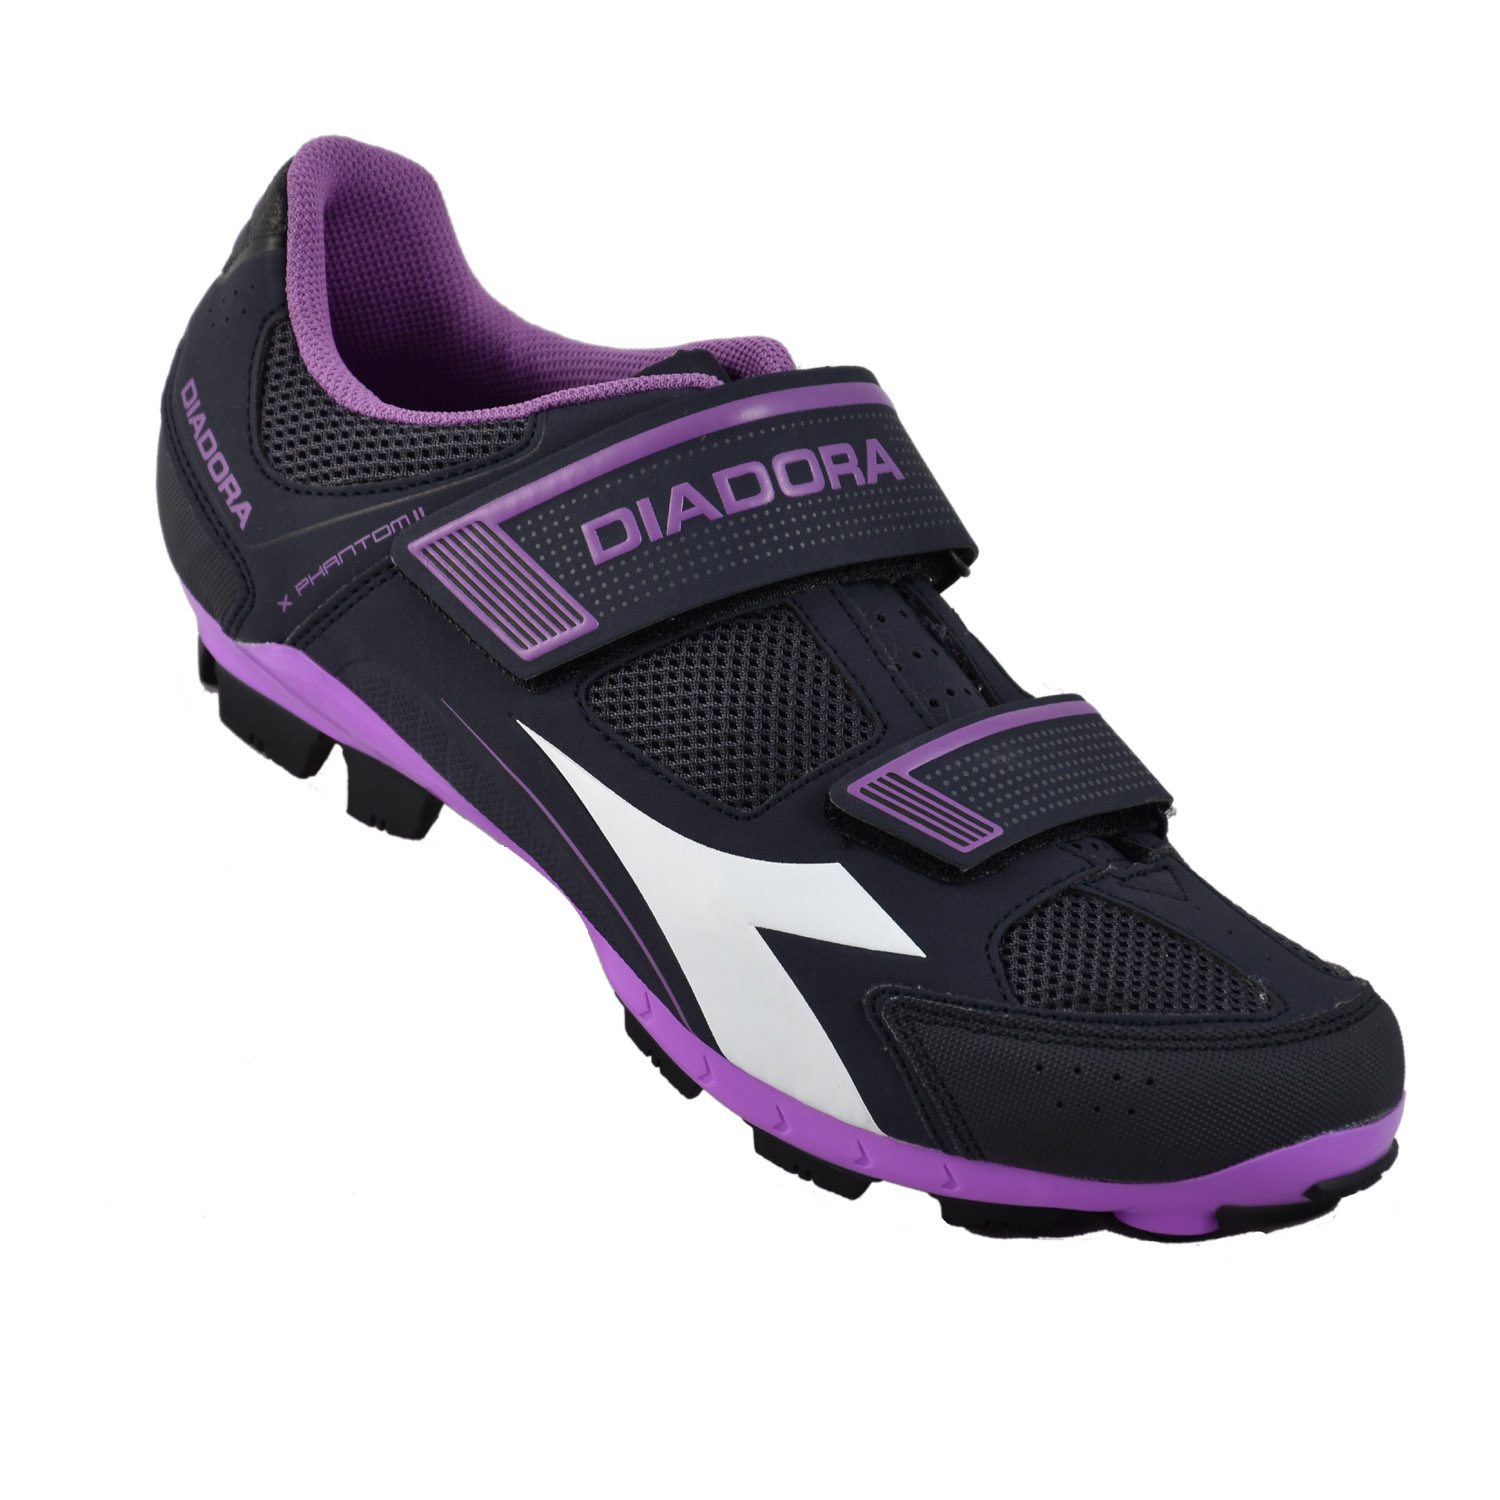 diadora mtb x phantom ii mtb schuhe grau violett gr e 37. Black Bedroom Furniture Sets. Home Design Ideas